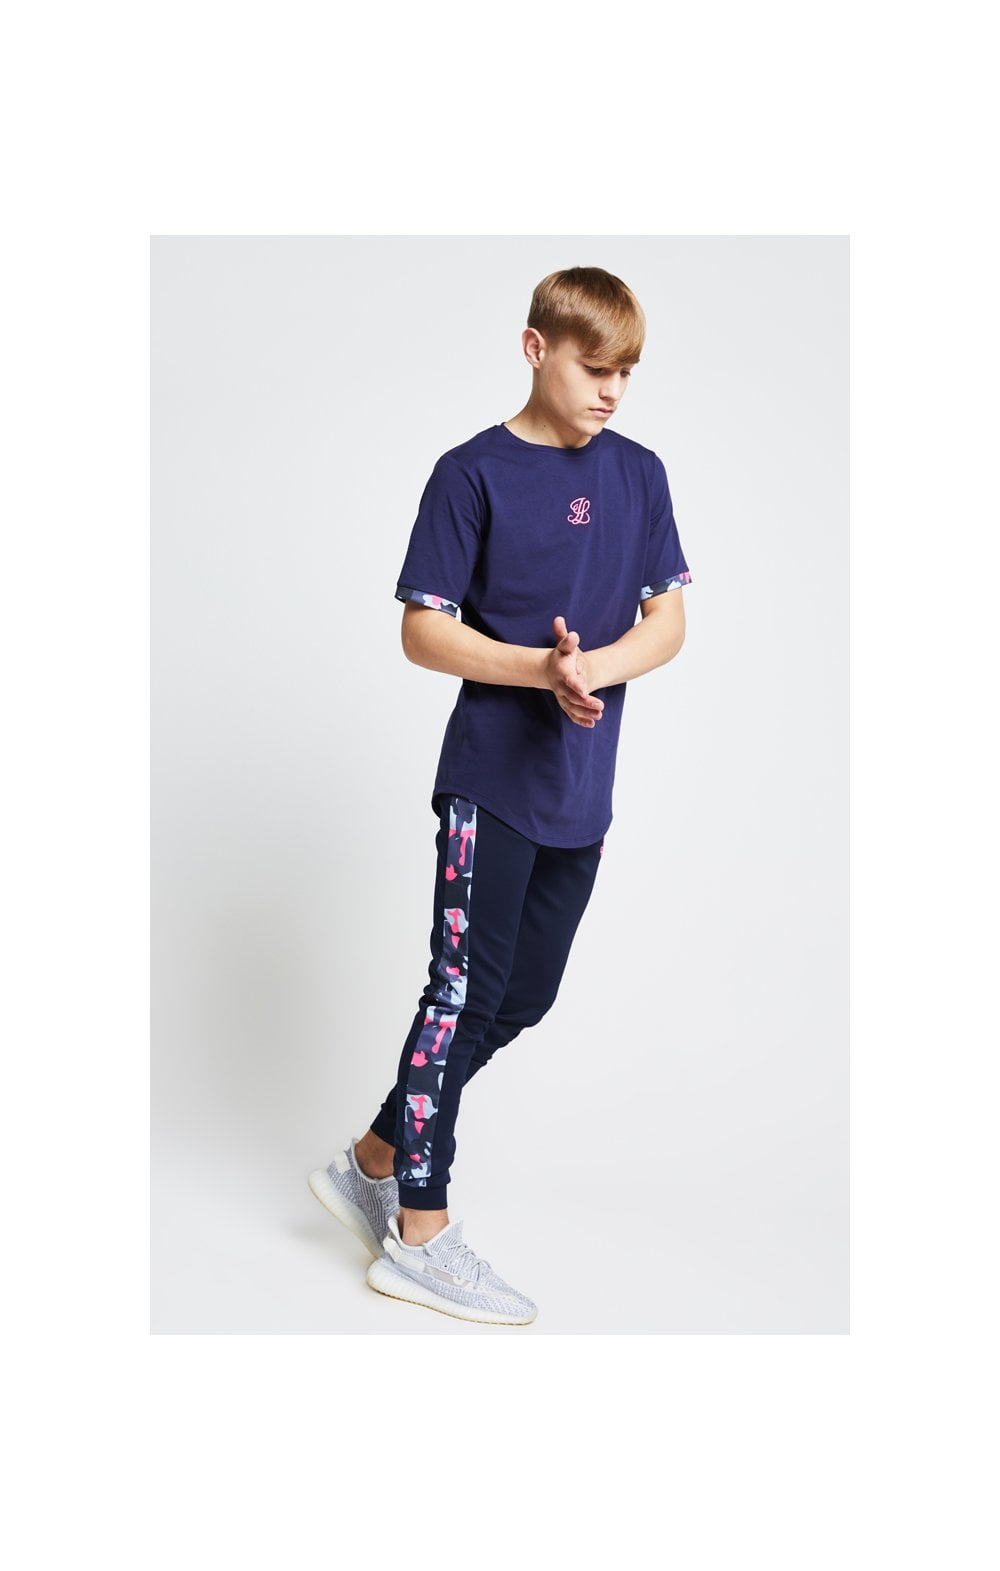 Load image into Gallery viewer, Illusive London Contrast Cuff Tee – Navy & Neon Pink Camo (4)